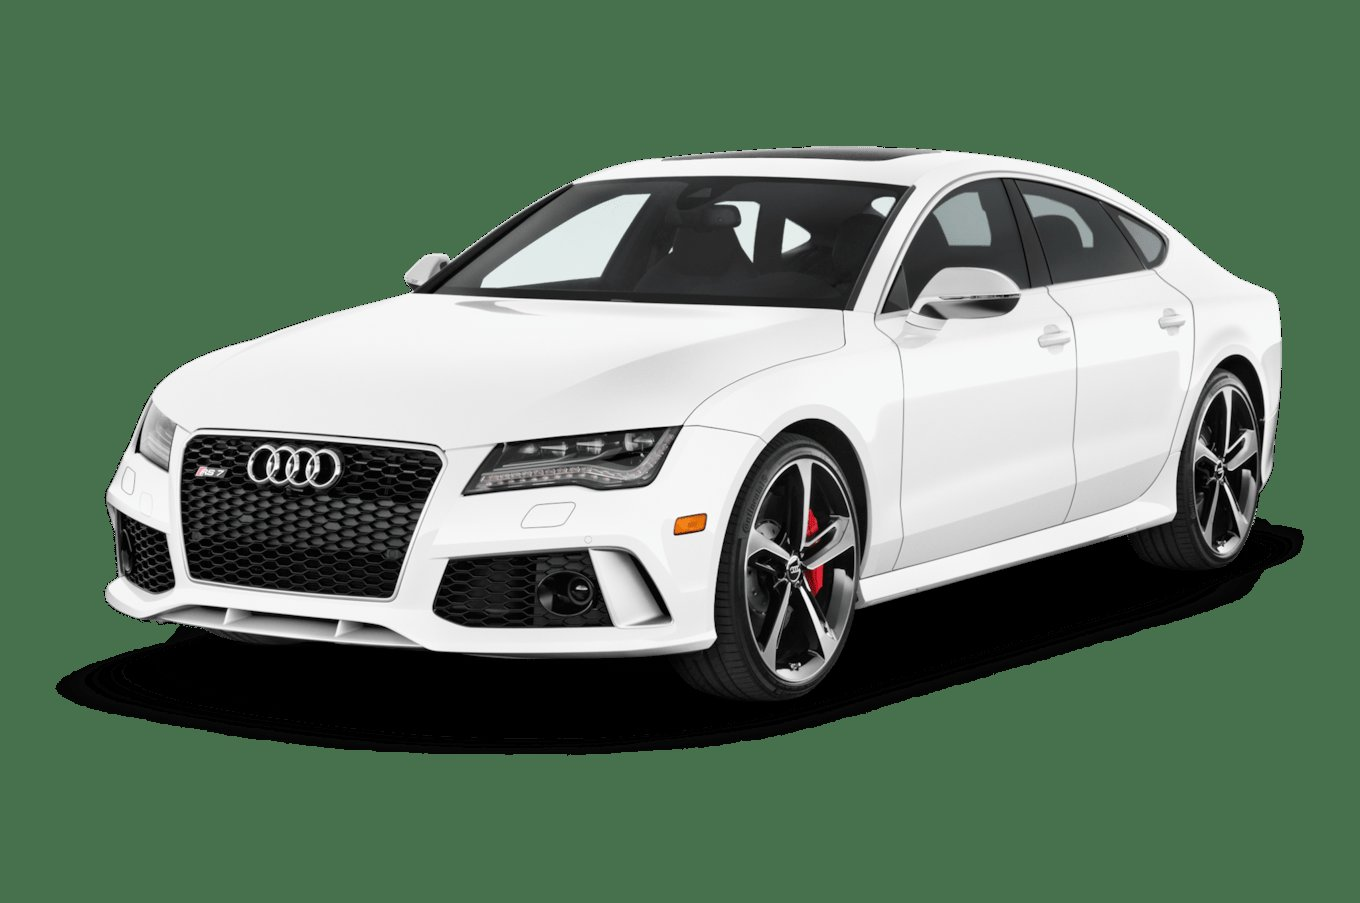 Latest 2016 Audi Rs 7 Reviews Research Rs 7 Prices Specs Free Download